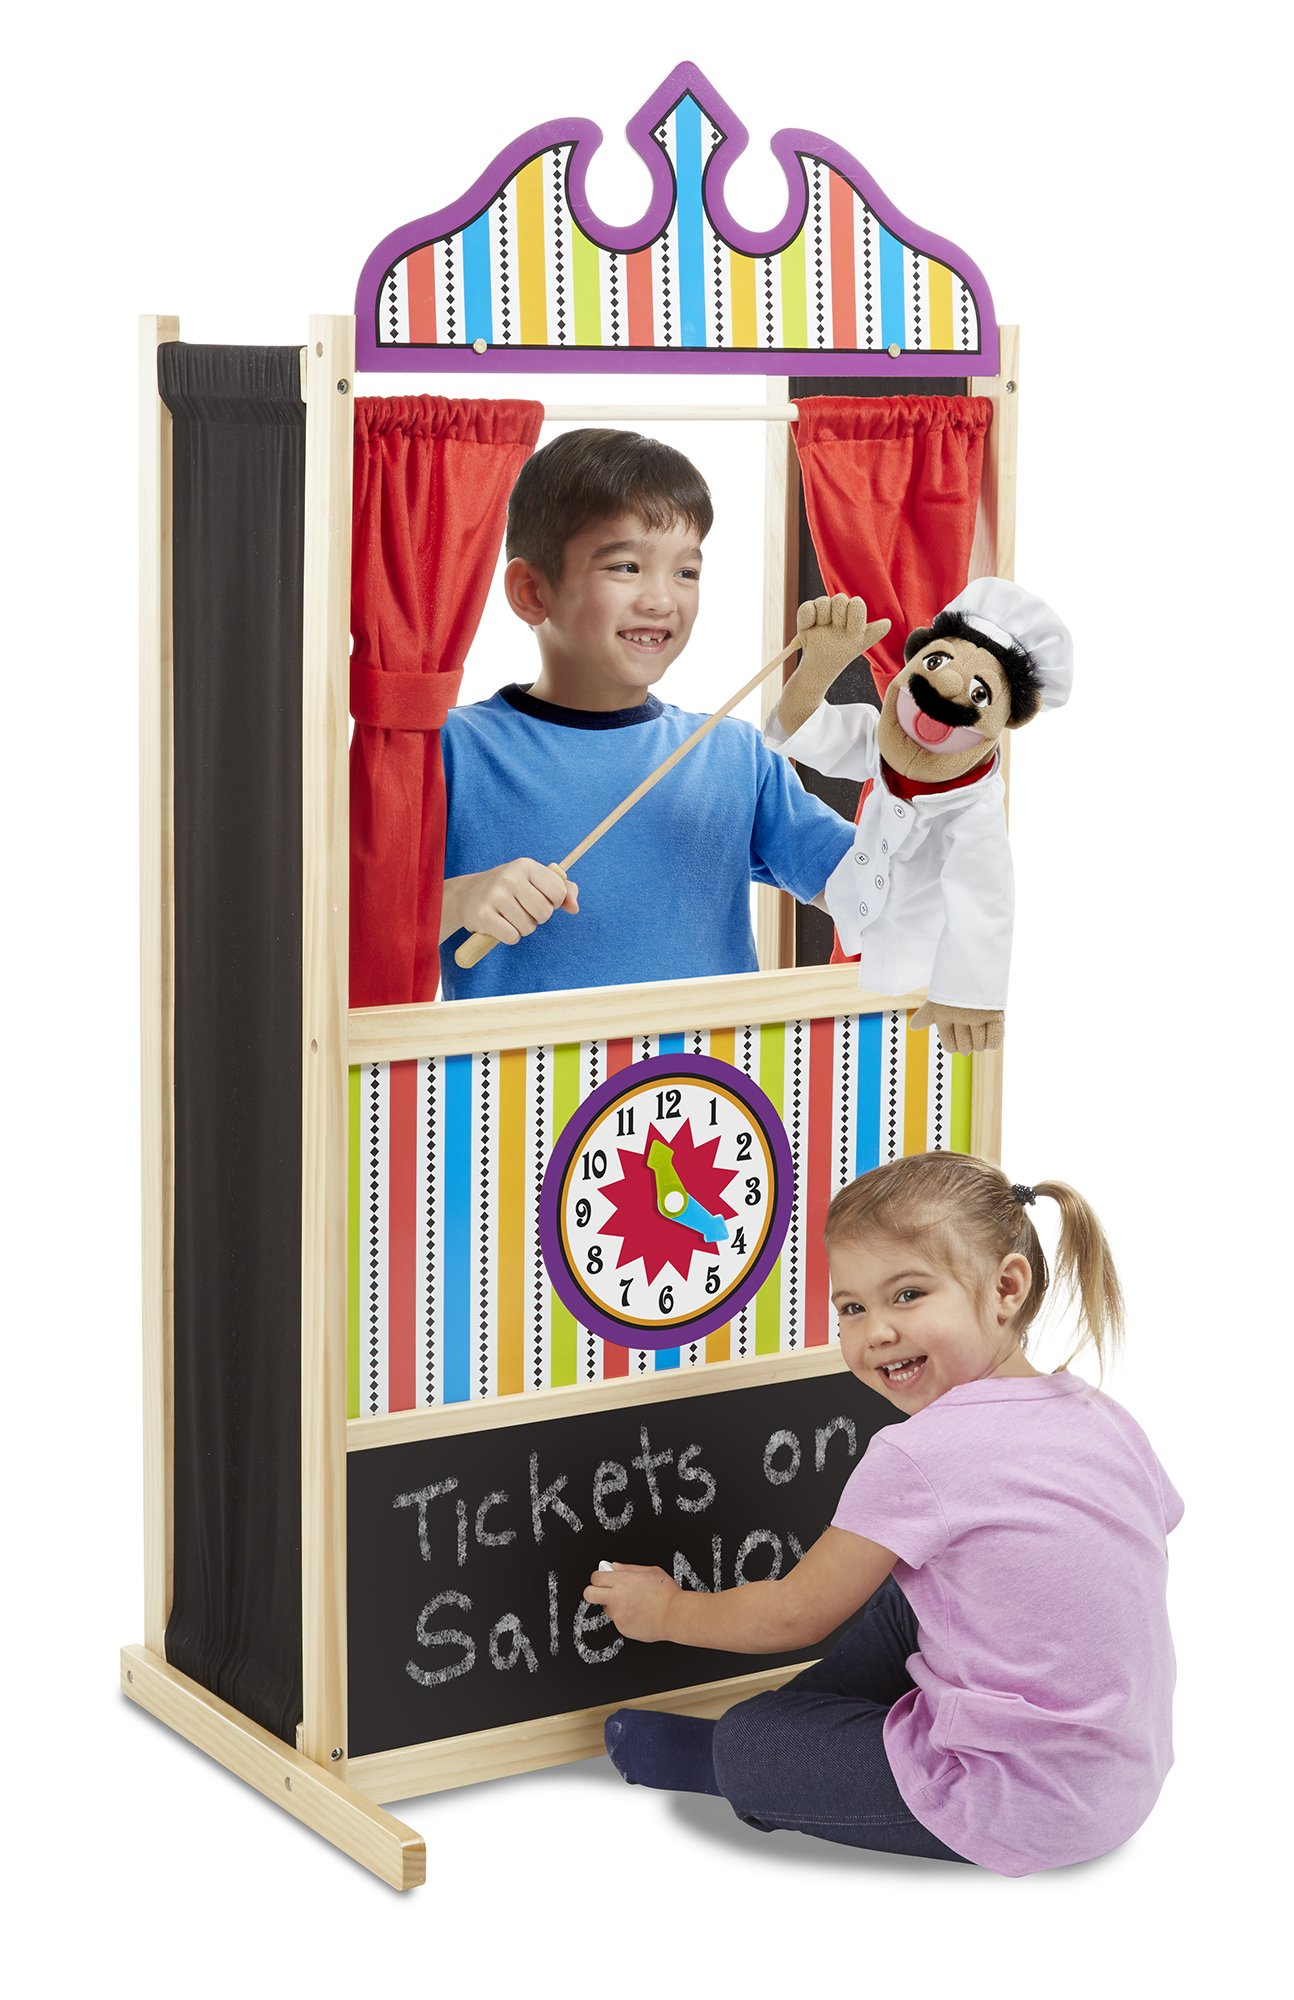 Melissa & Doug Deluxe Puppet Theater - Sturdy Wooden Construction by Melissa & Doug (Image #2)